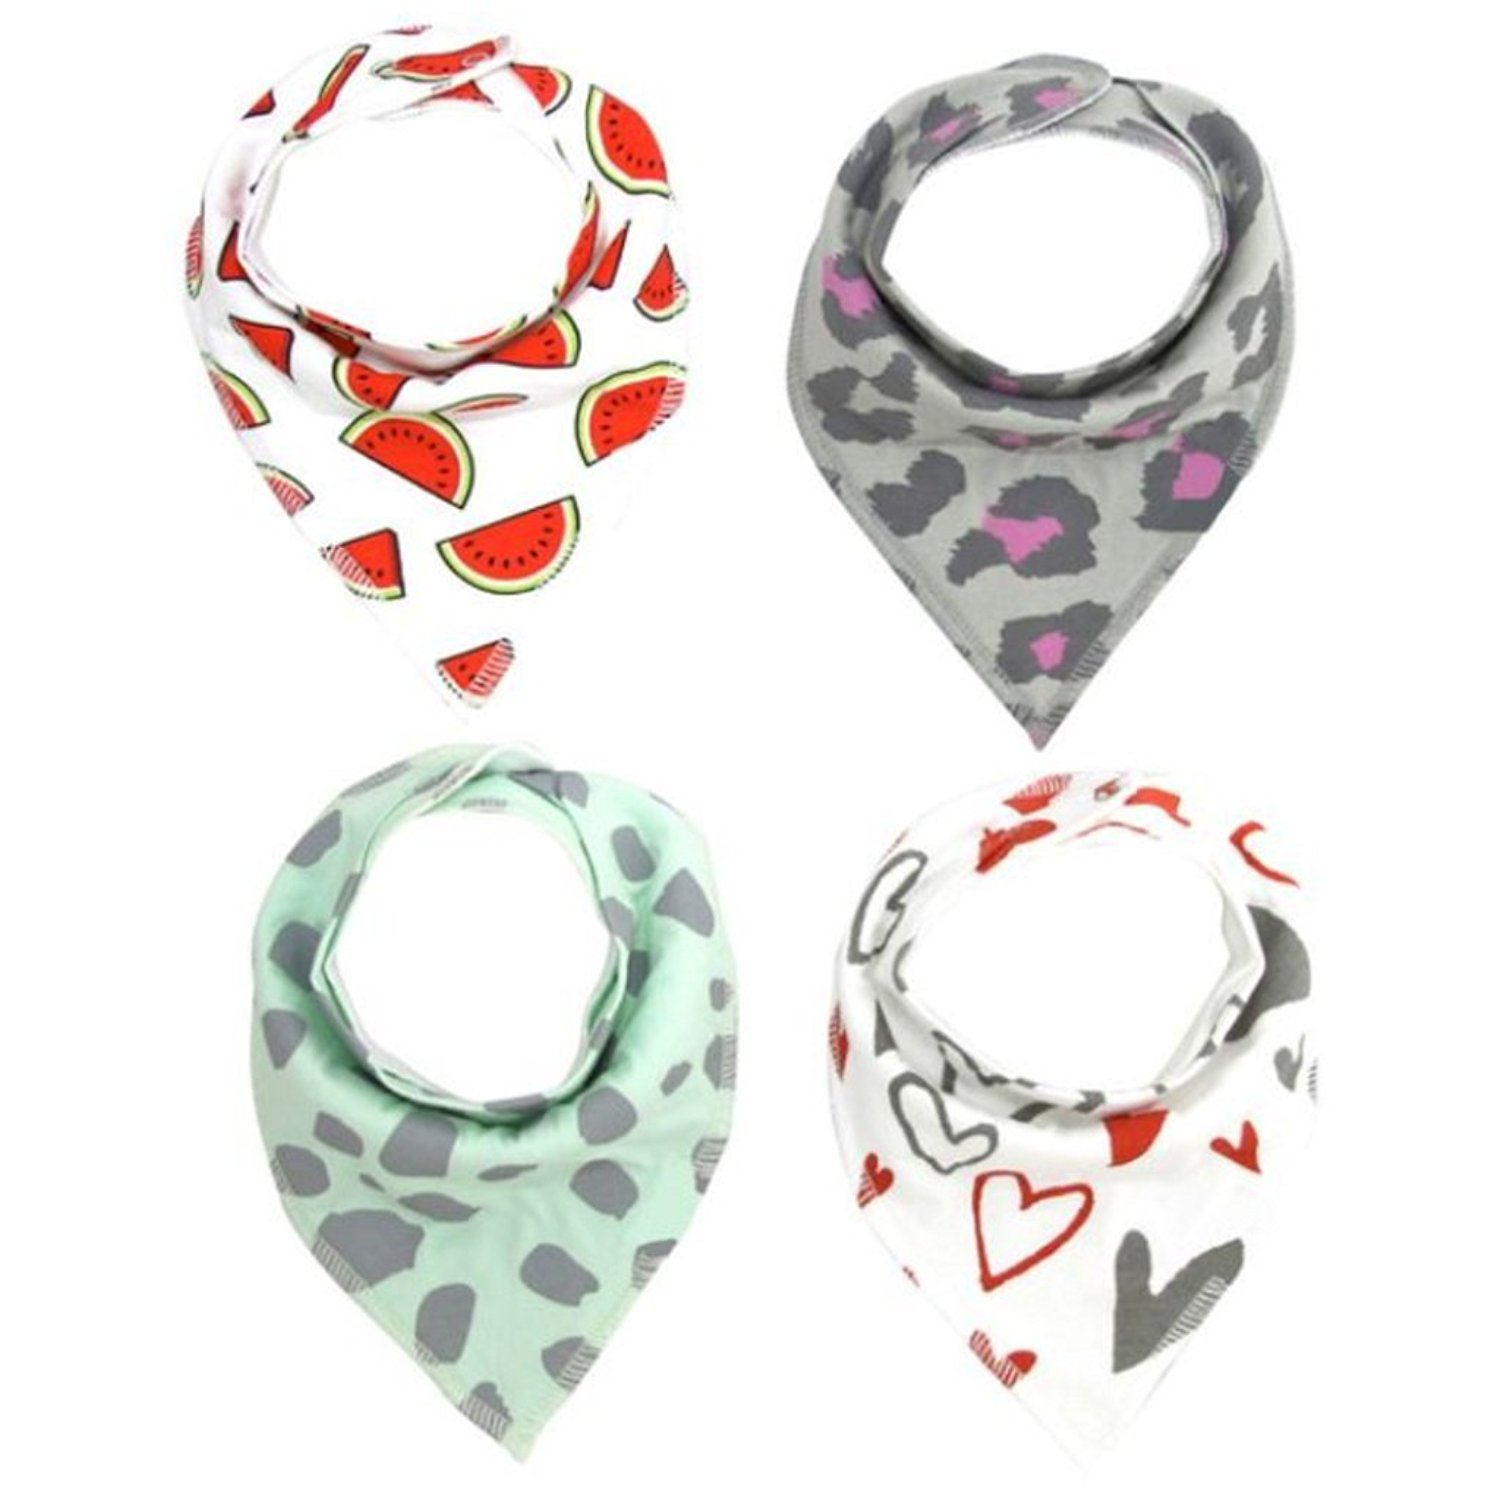 Baby Bandana Drool Bib Set Of 4Organic Super Absorbent Soft Chic Drooling And Teething Bibs B072MGP9P9